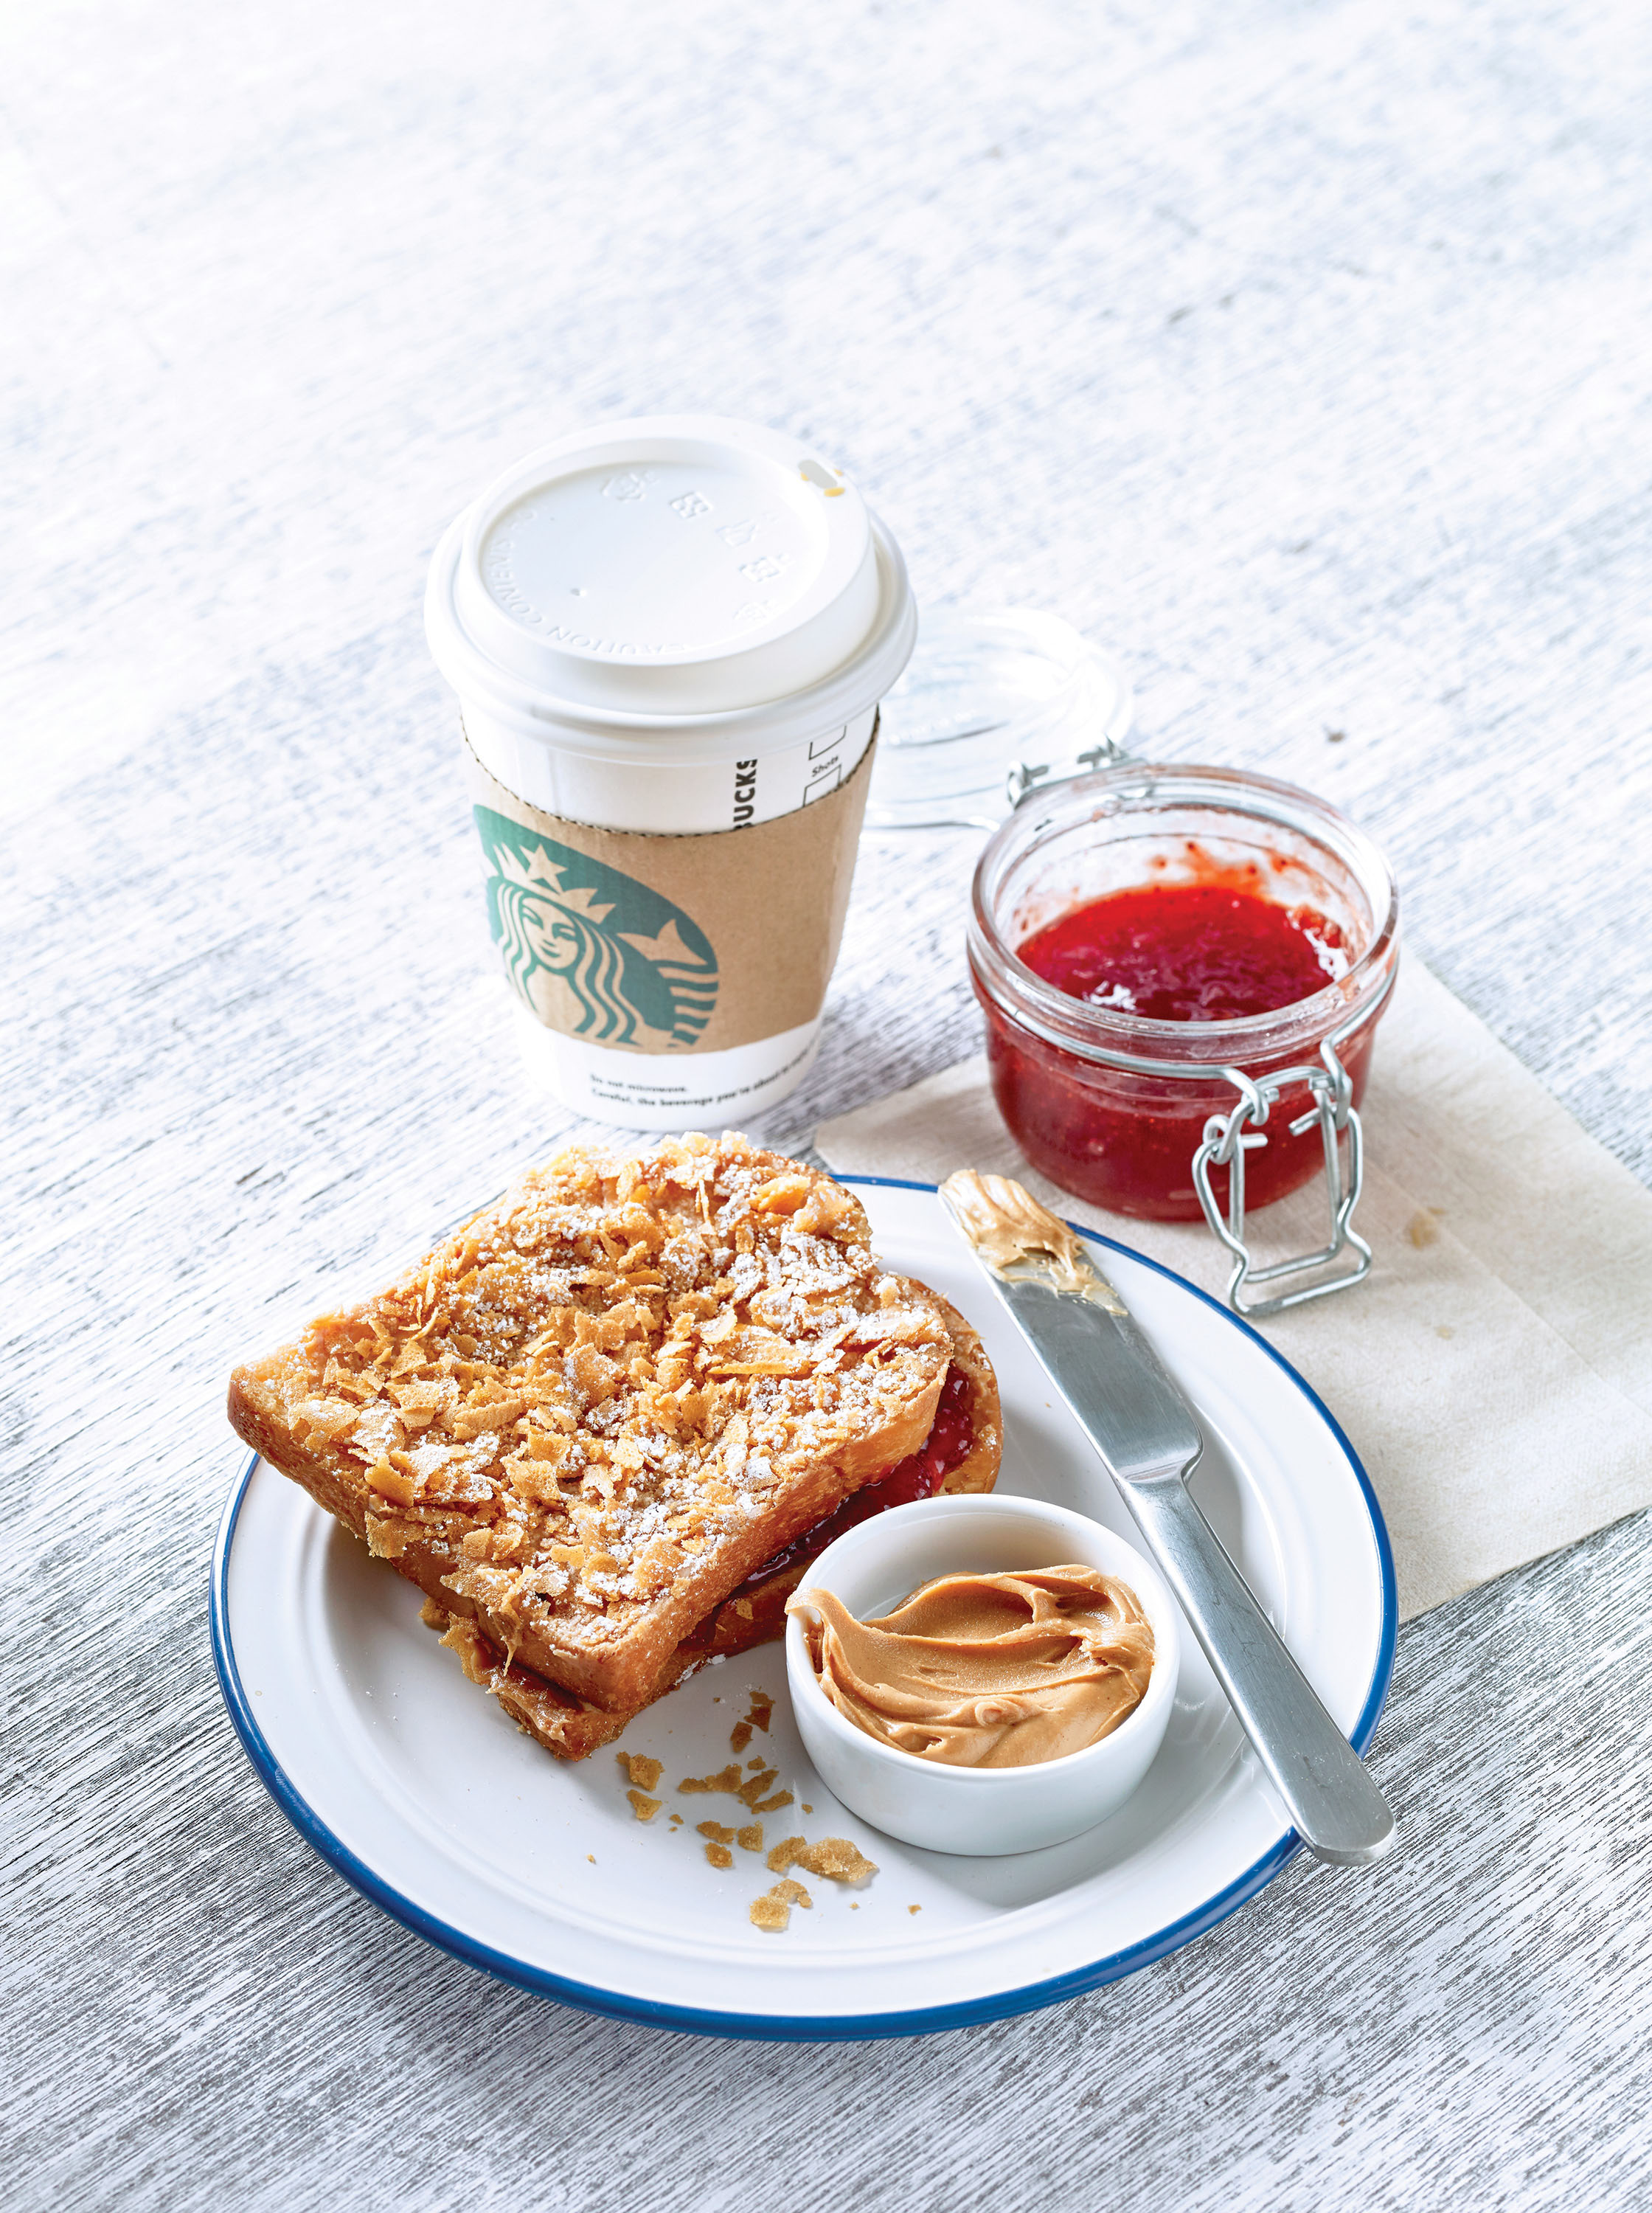 Starbucks kicks off 2018 with exciting new beverages and breakfast lineup - Alvinology